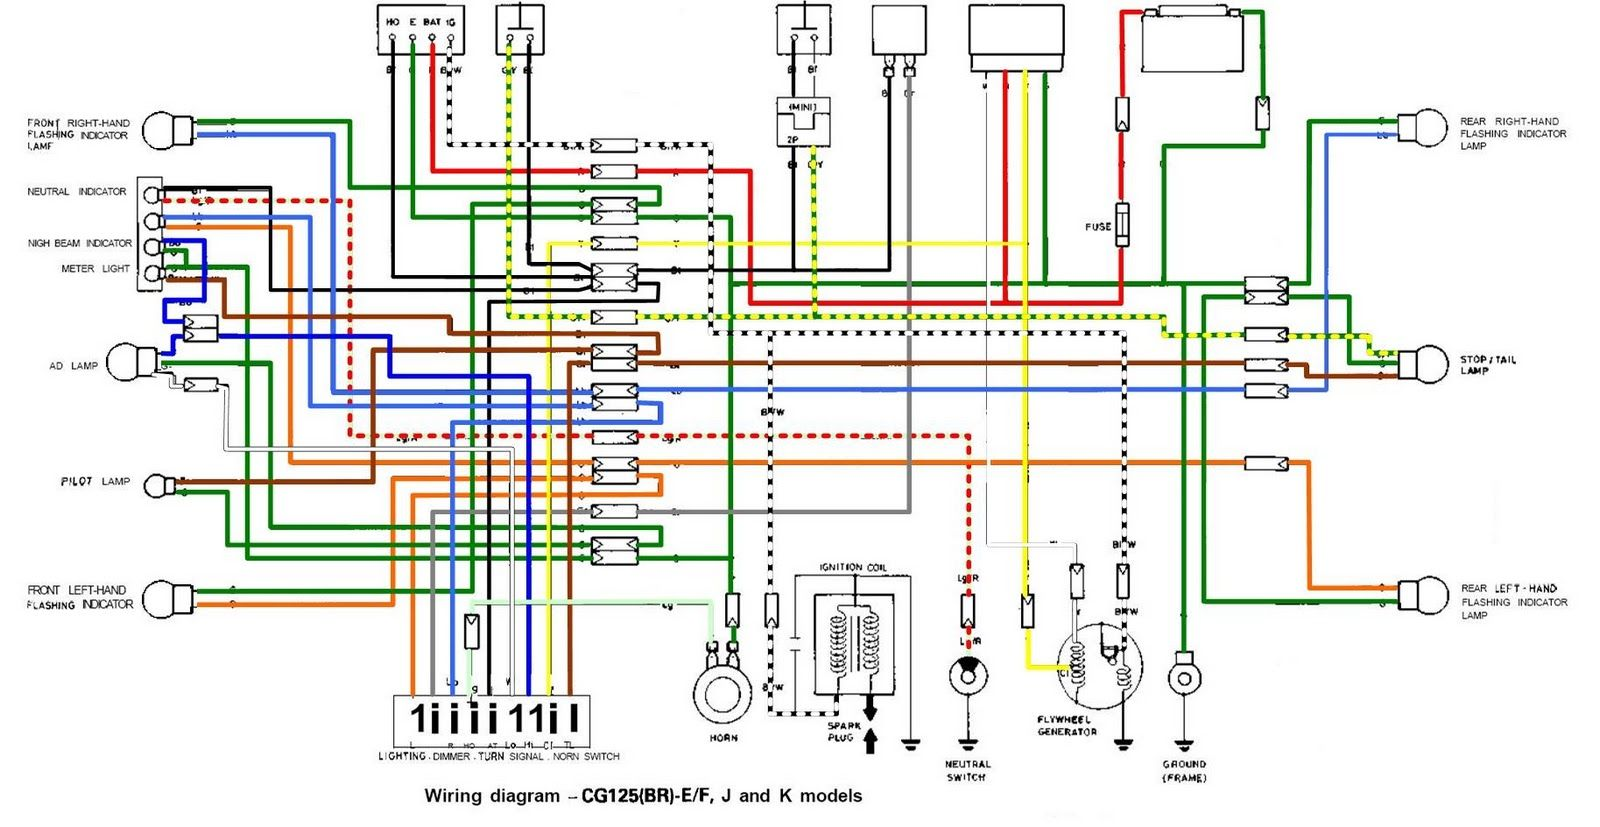 honda cg 125 wiring diagram best wiring diagram honda 125 motorcycle ignition wiring [ 1600 x 827 Pixel ]